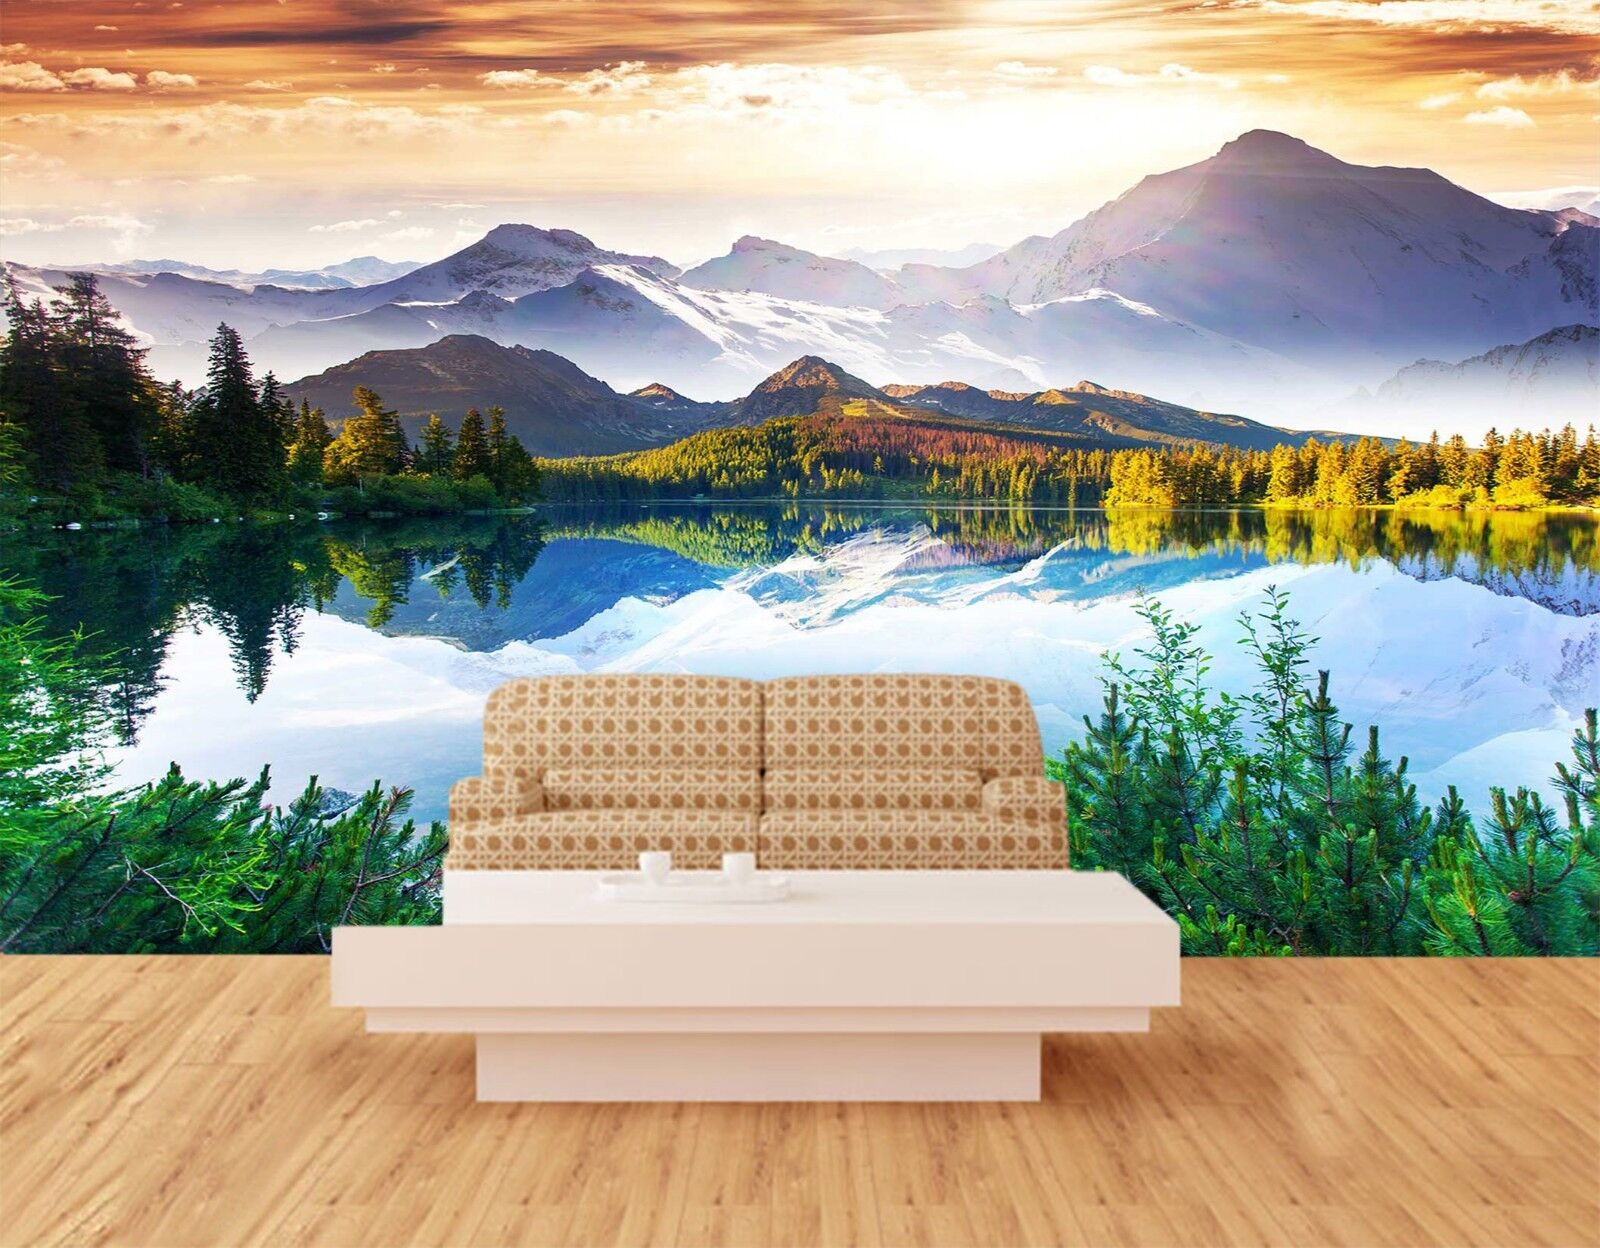 3D Landscape Lake 7263 Wallpaper Mural Wall Print Wall Wallpaper Murals US Lemon